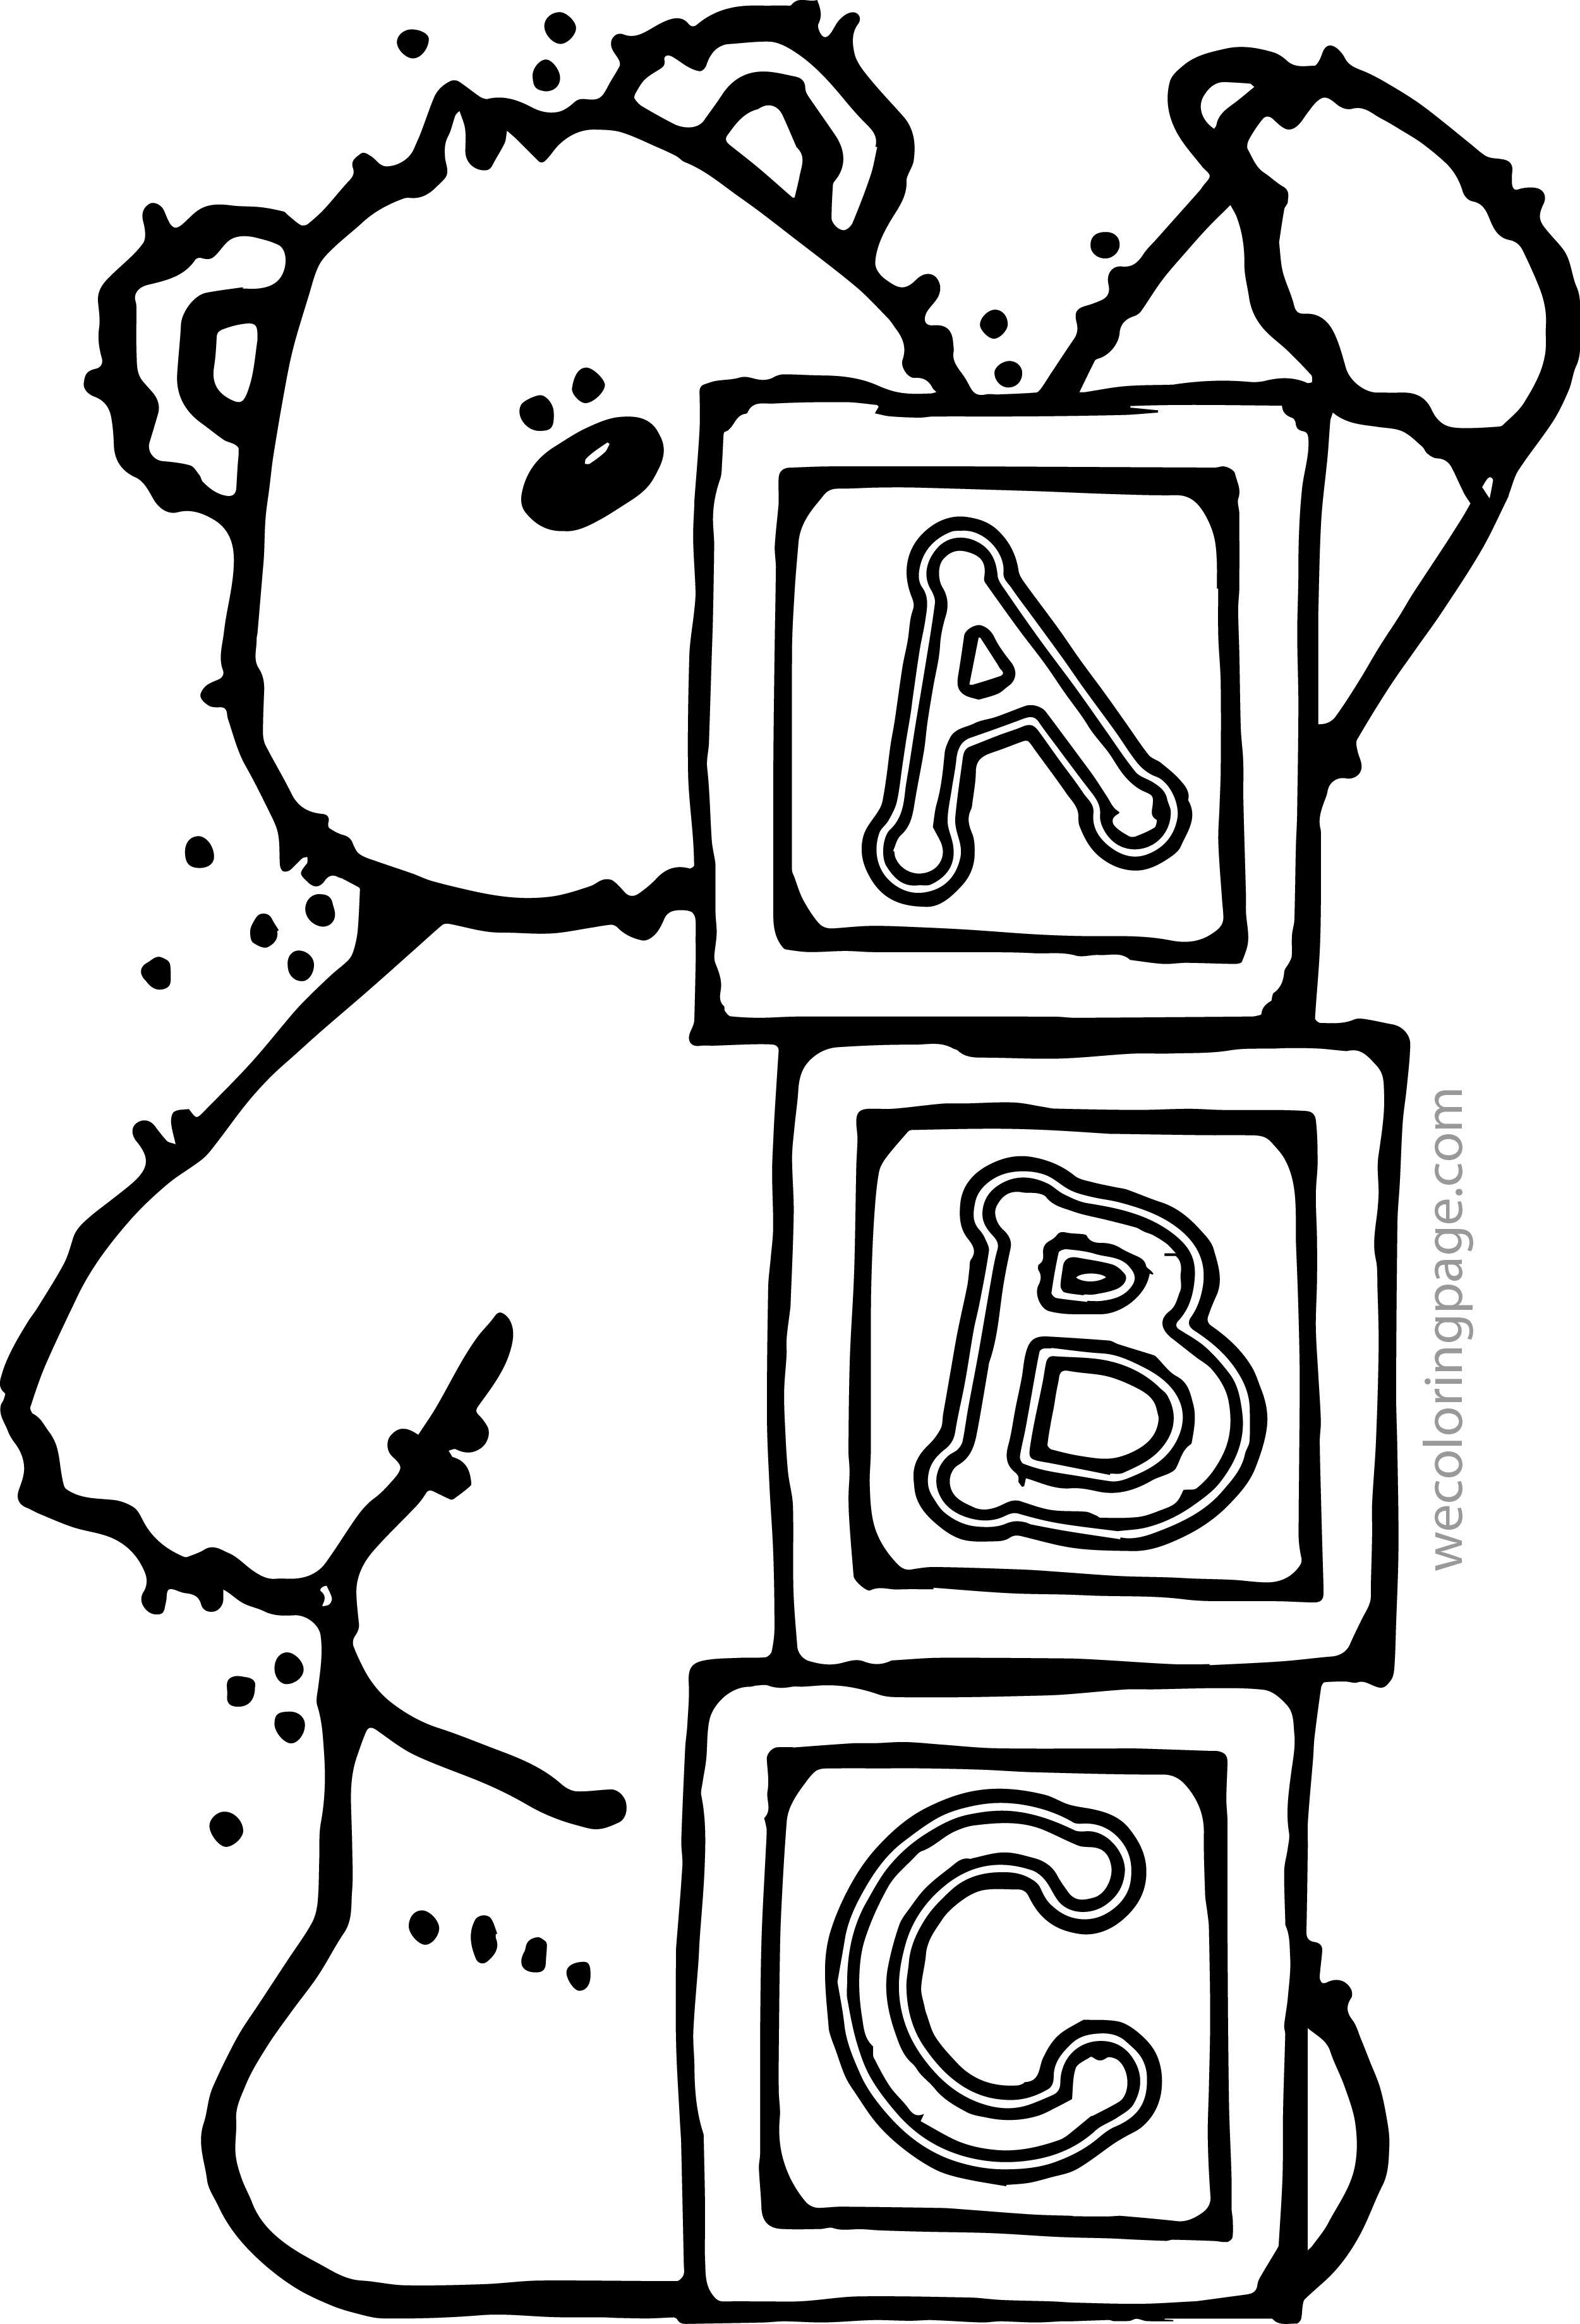 2501x3678 Printable Abc Coloring Pages For Kids Educational Flash Cards